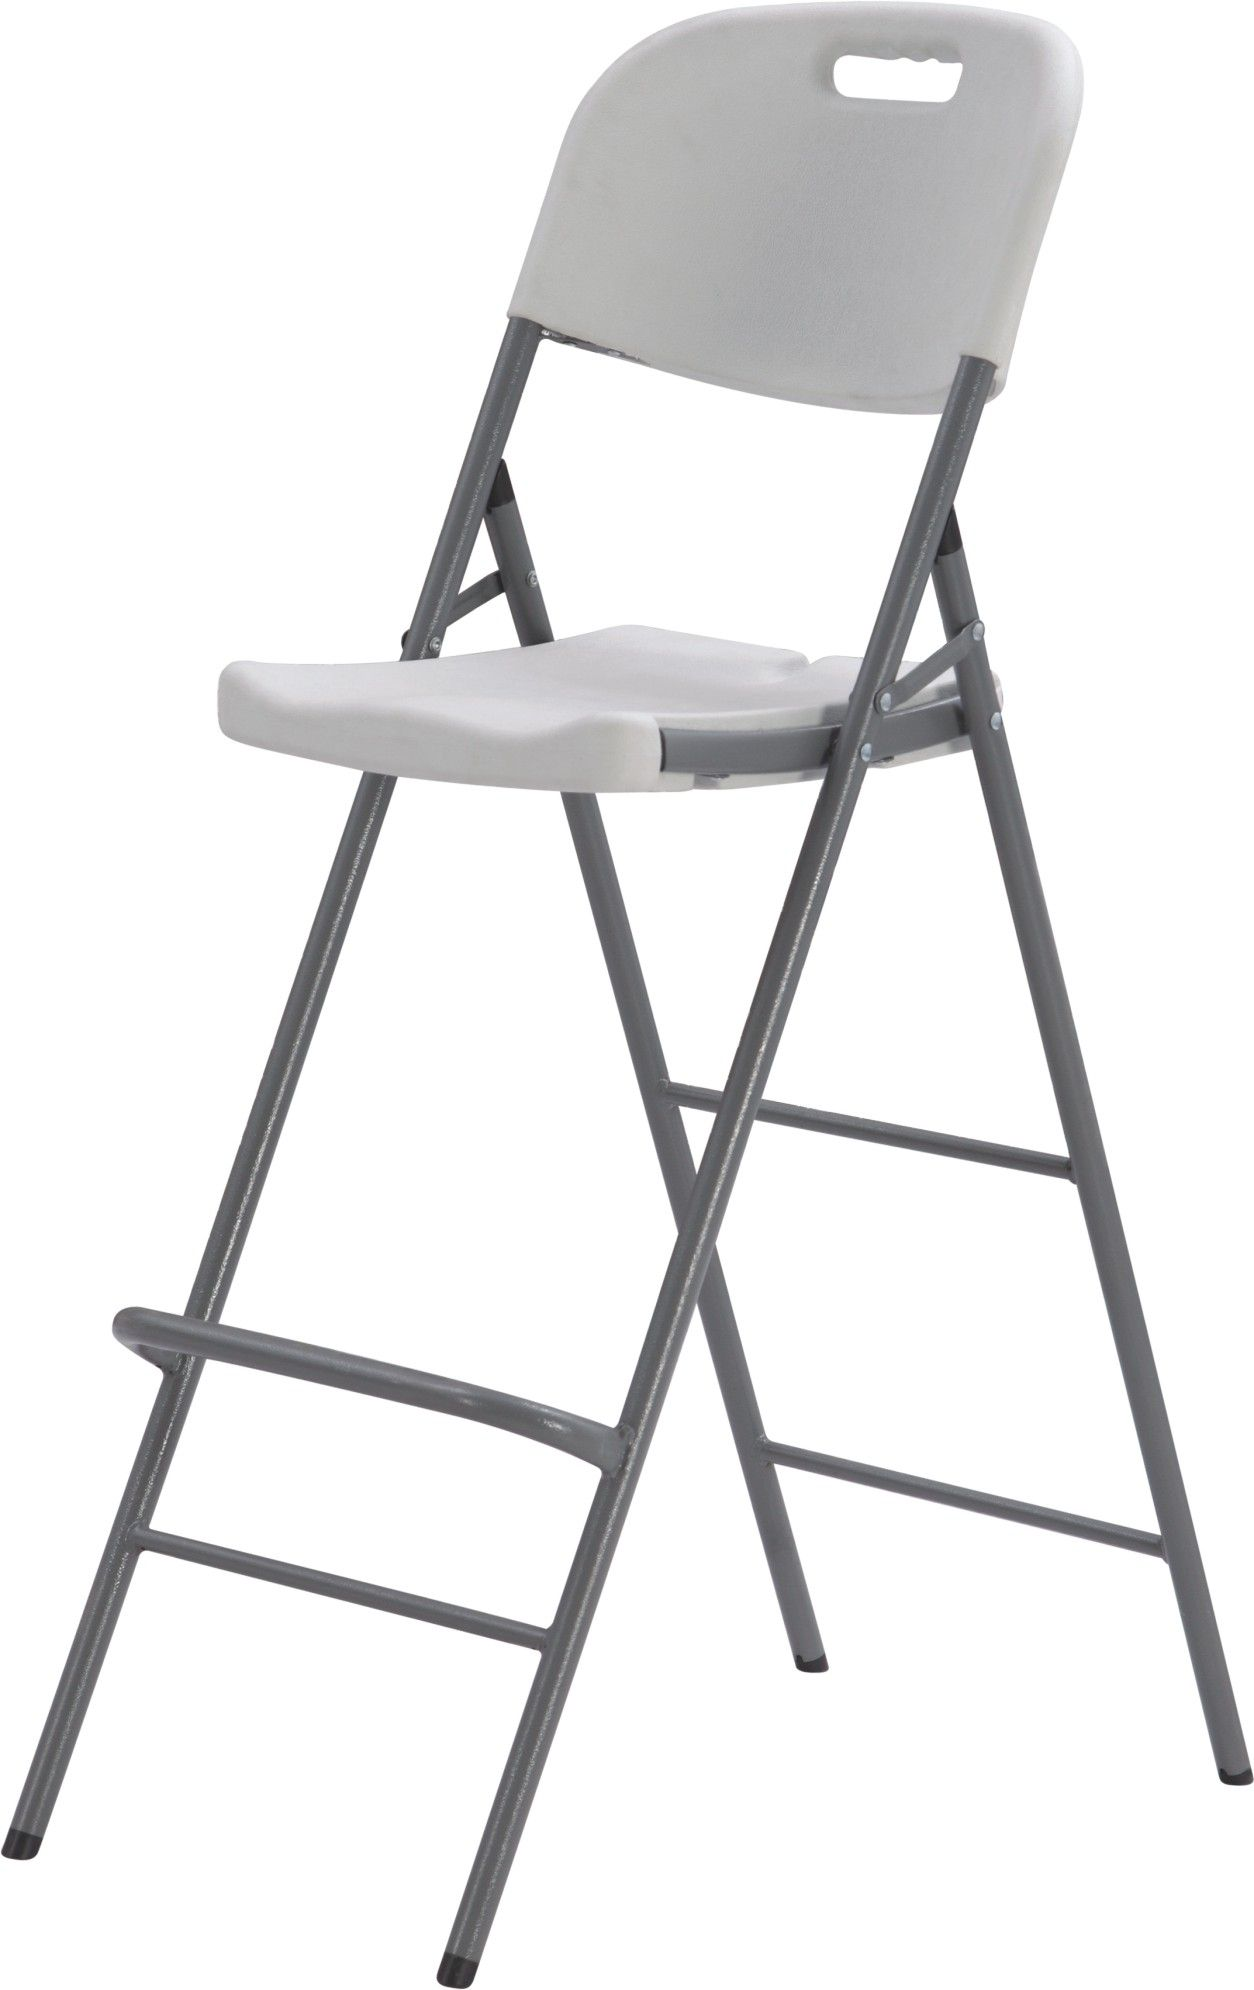 Outdoor Fold Up High Chair